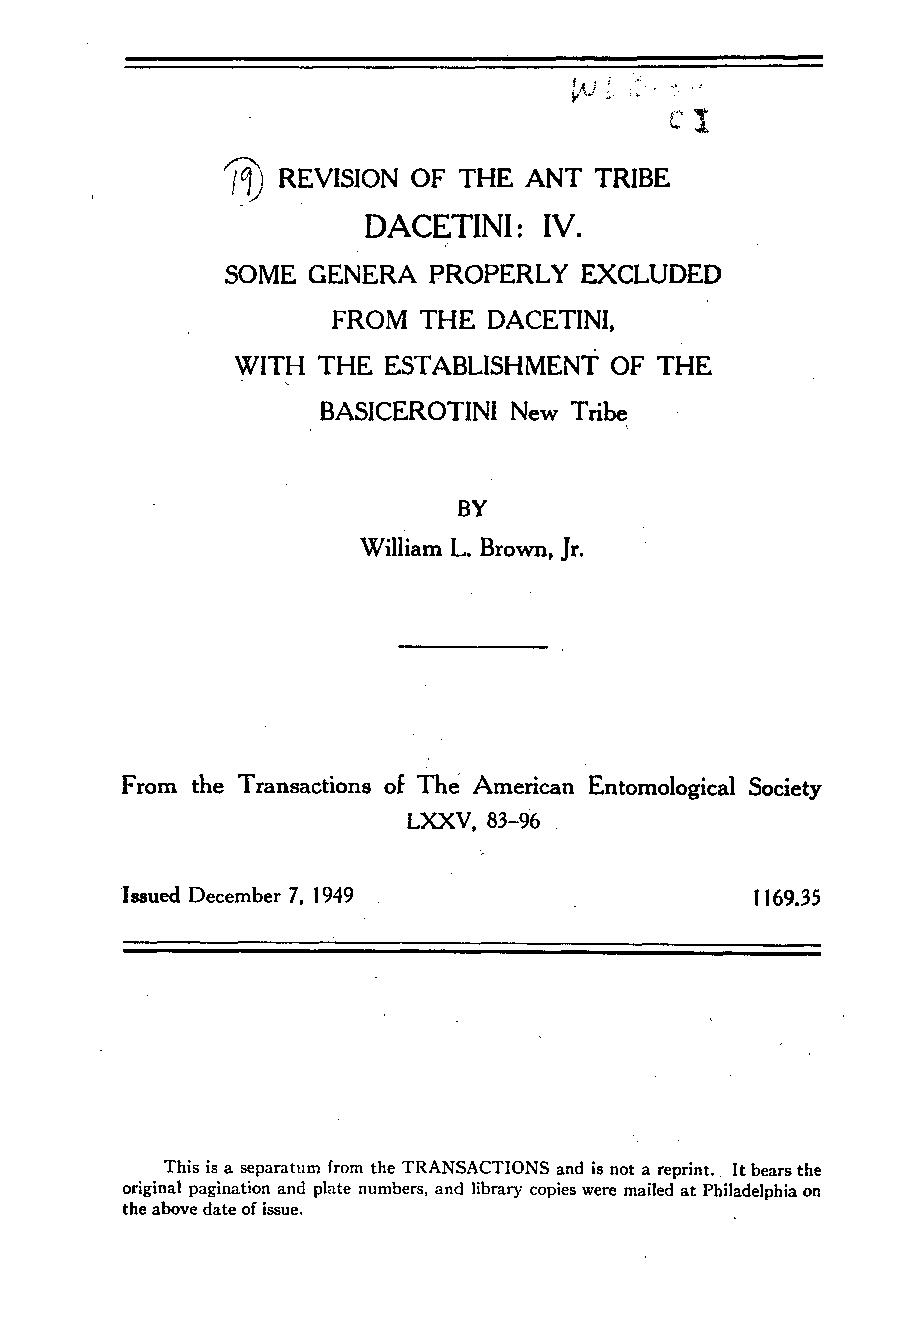 W. L. Brown - Revision of the ant tribe Dacetini: IV. Some genera properly excluded from the Dacetini, with the establishment of the Basicerotini, new tribe.